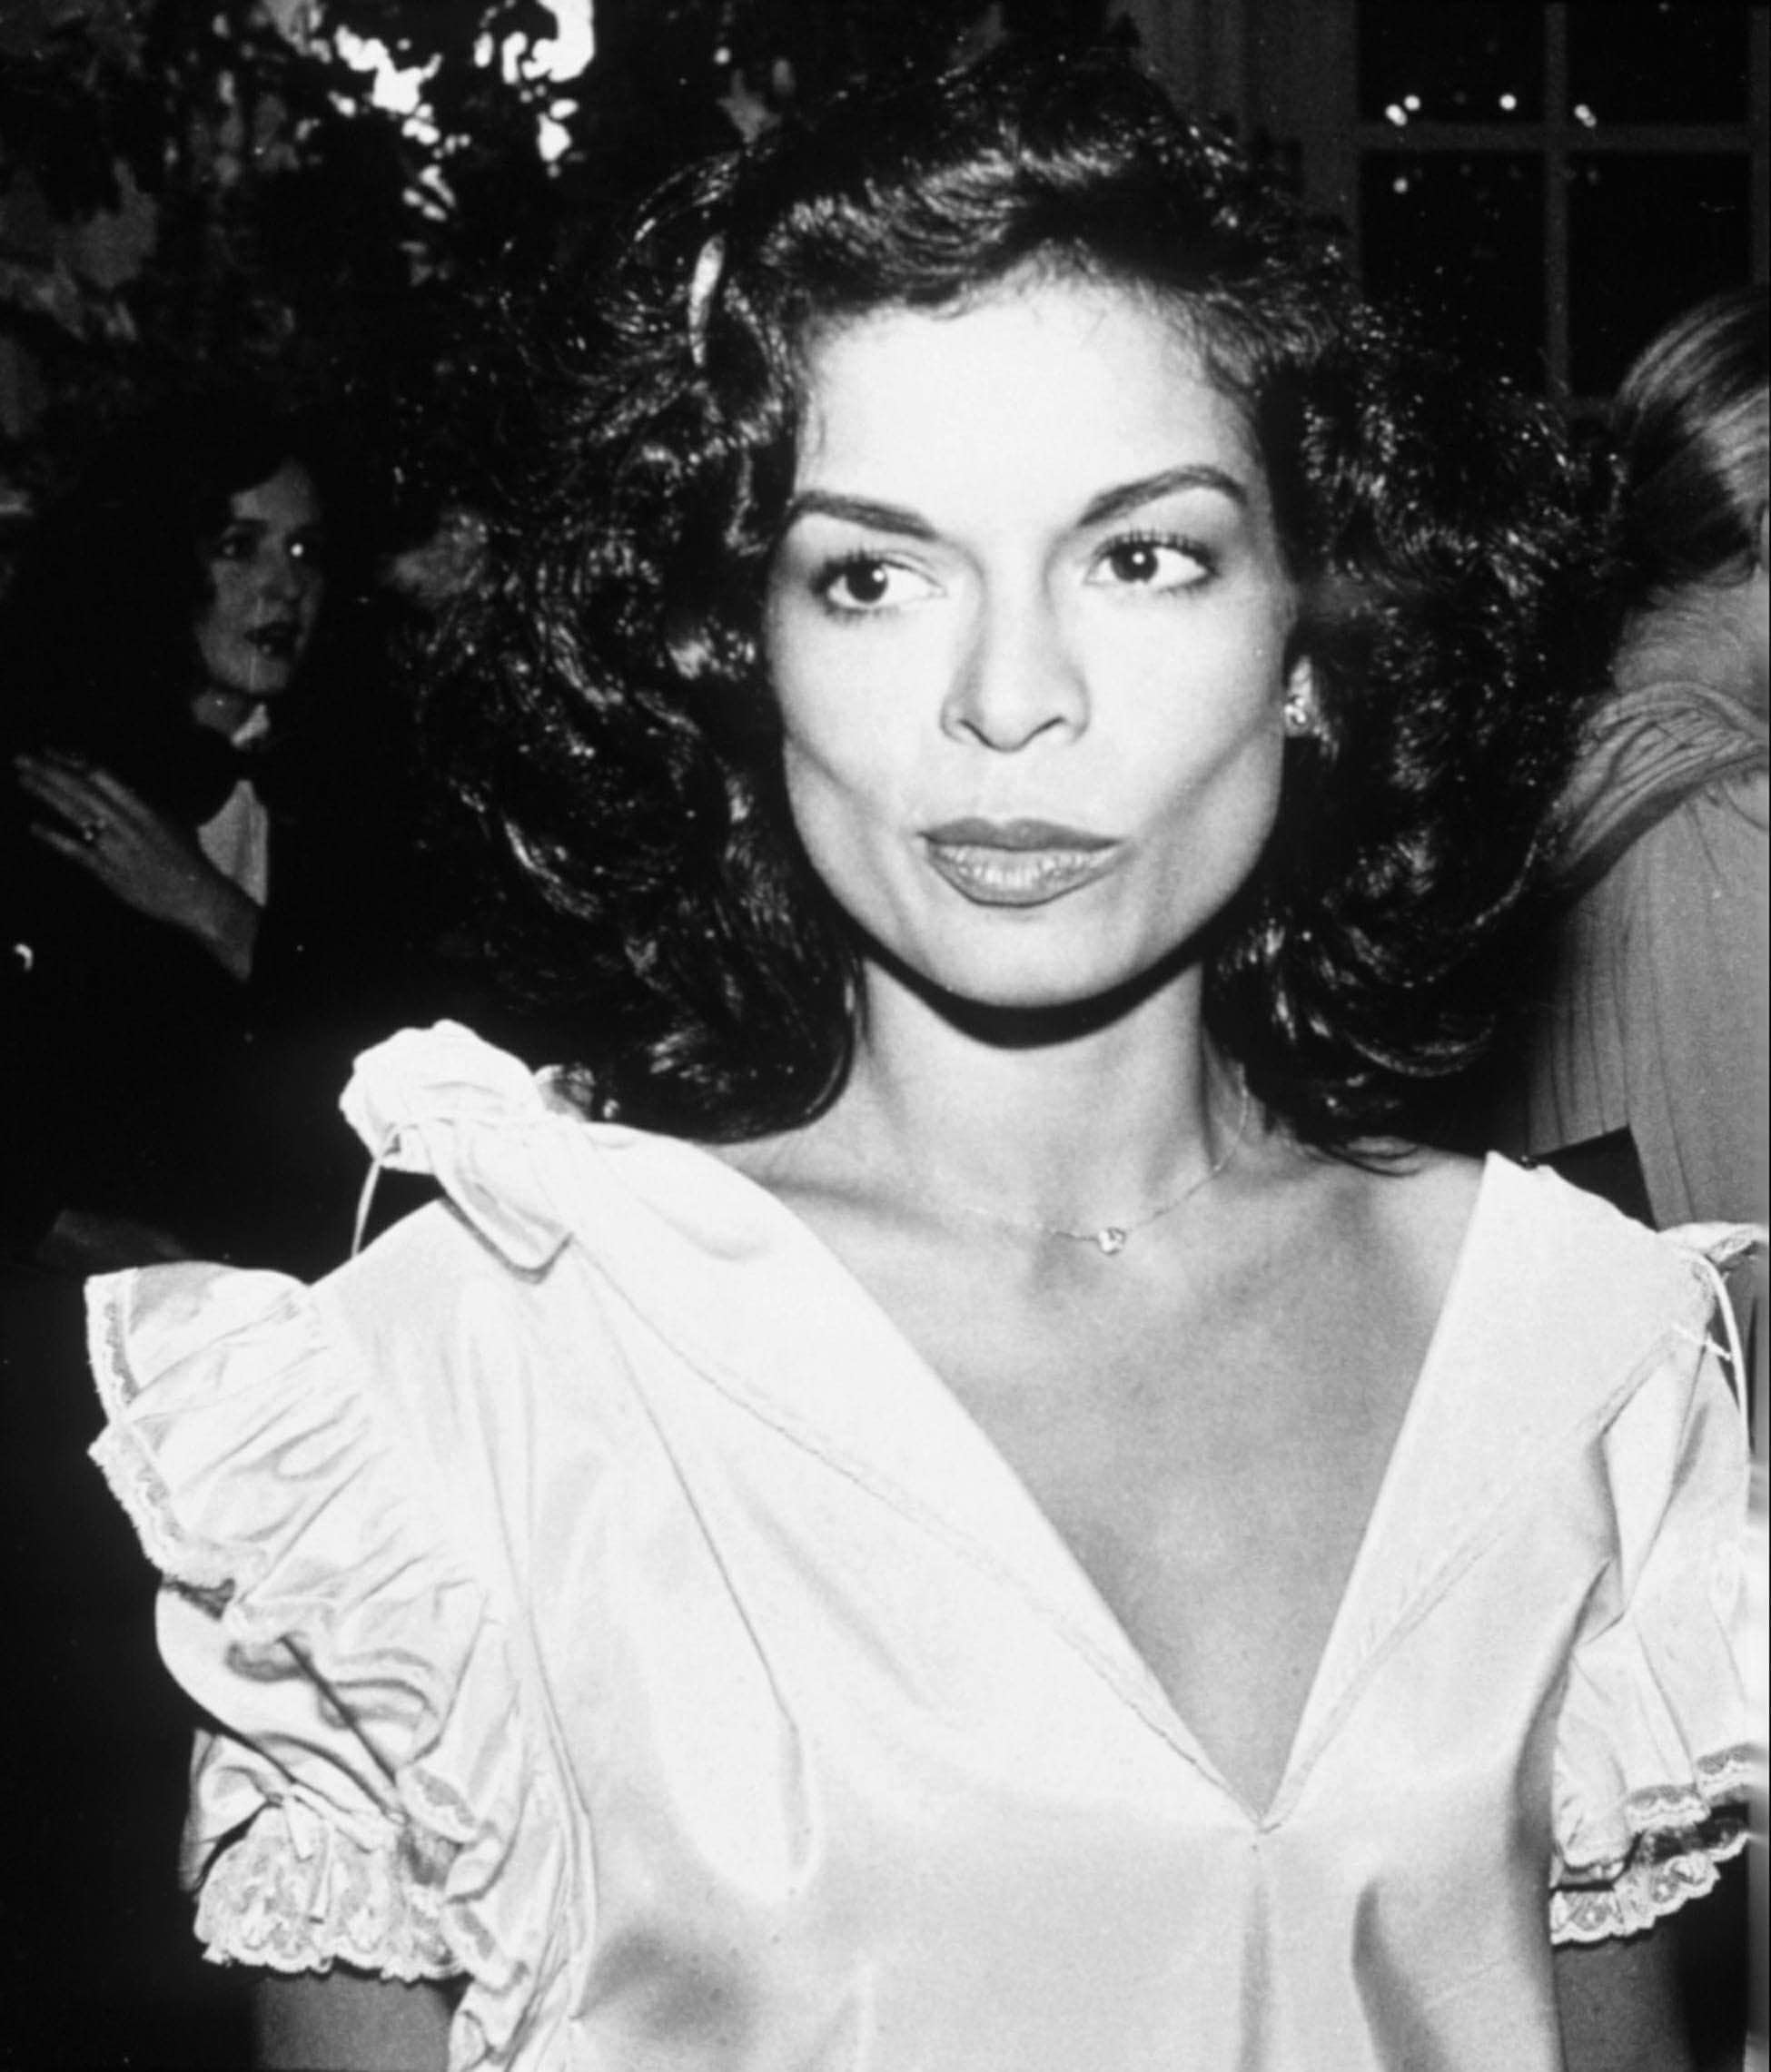 70s hairstyles: Bianca Jagger dark brown shoulder length hair with curls in black and white image wearing a white dress with puff sleeves